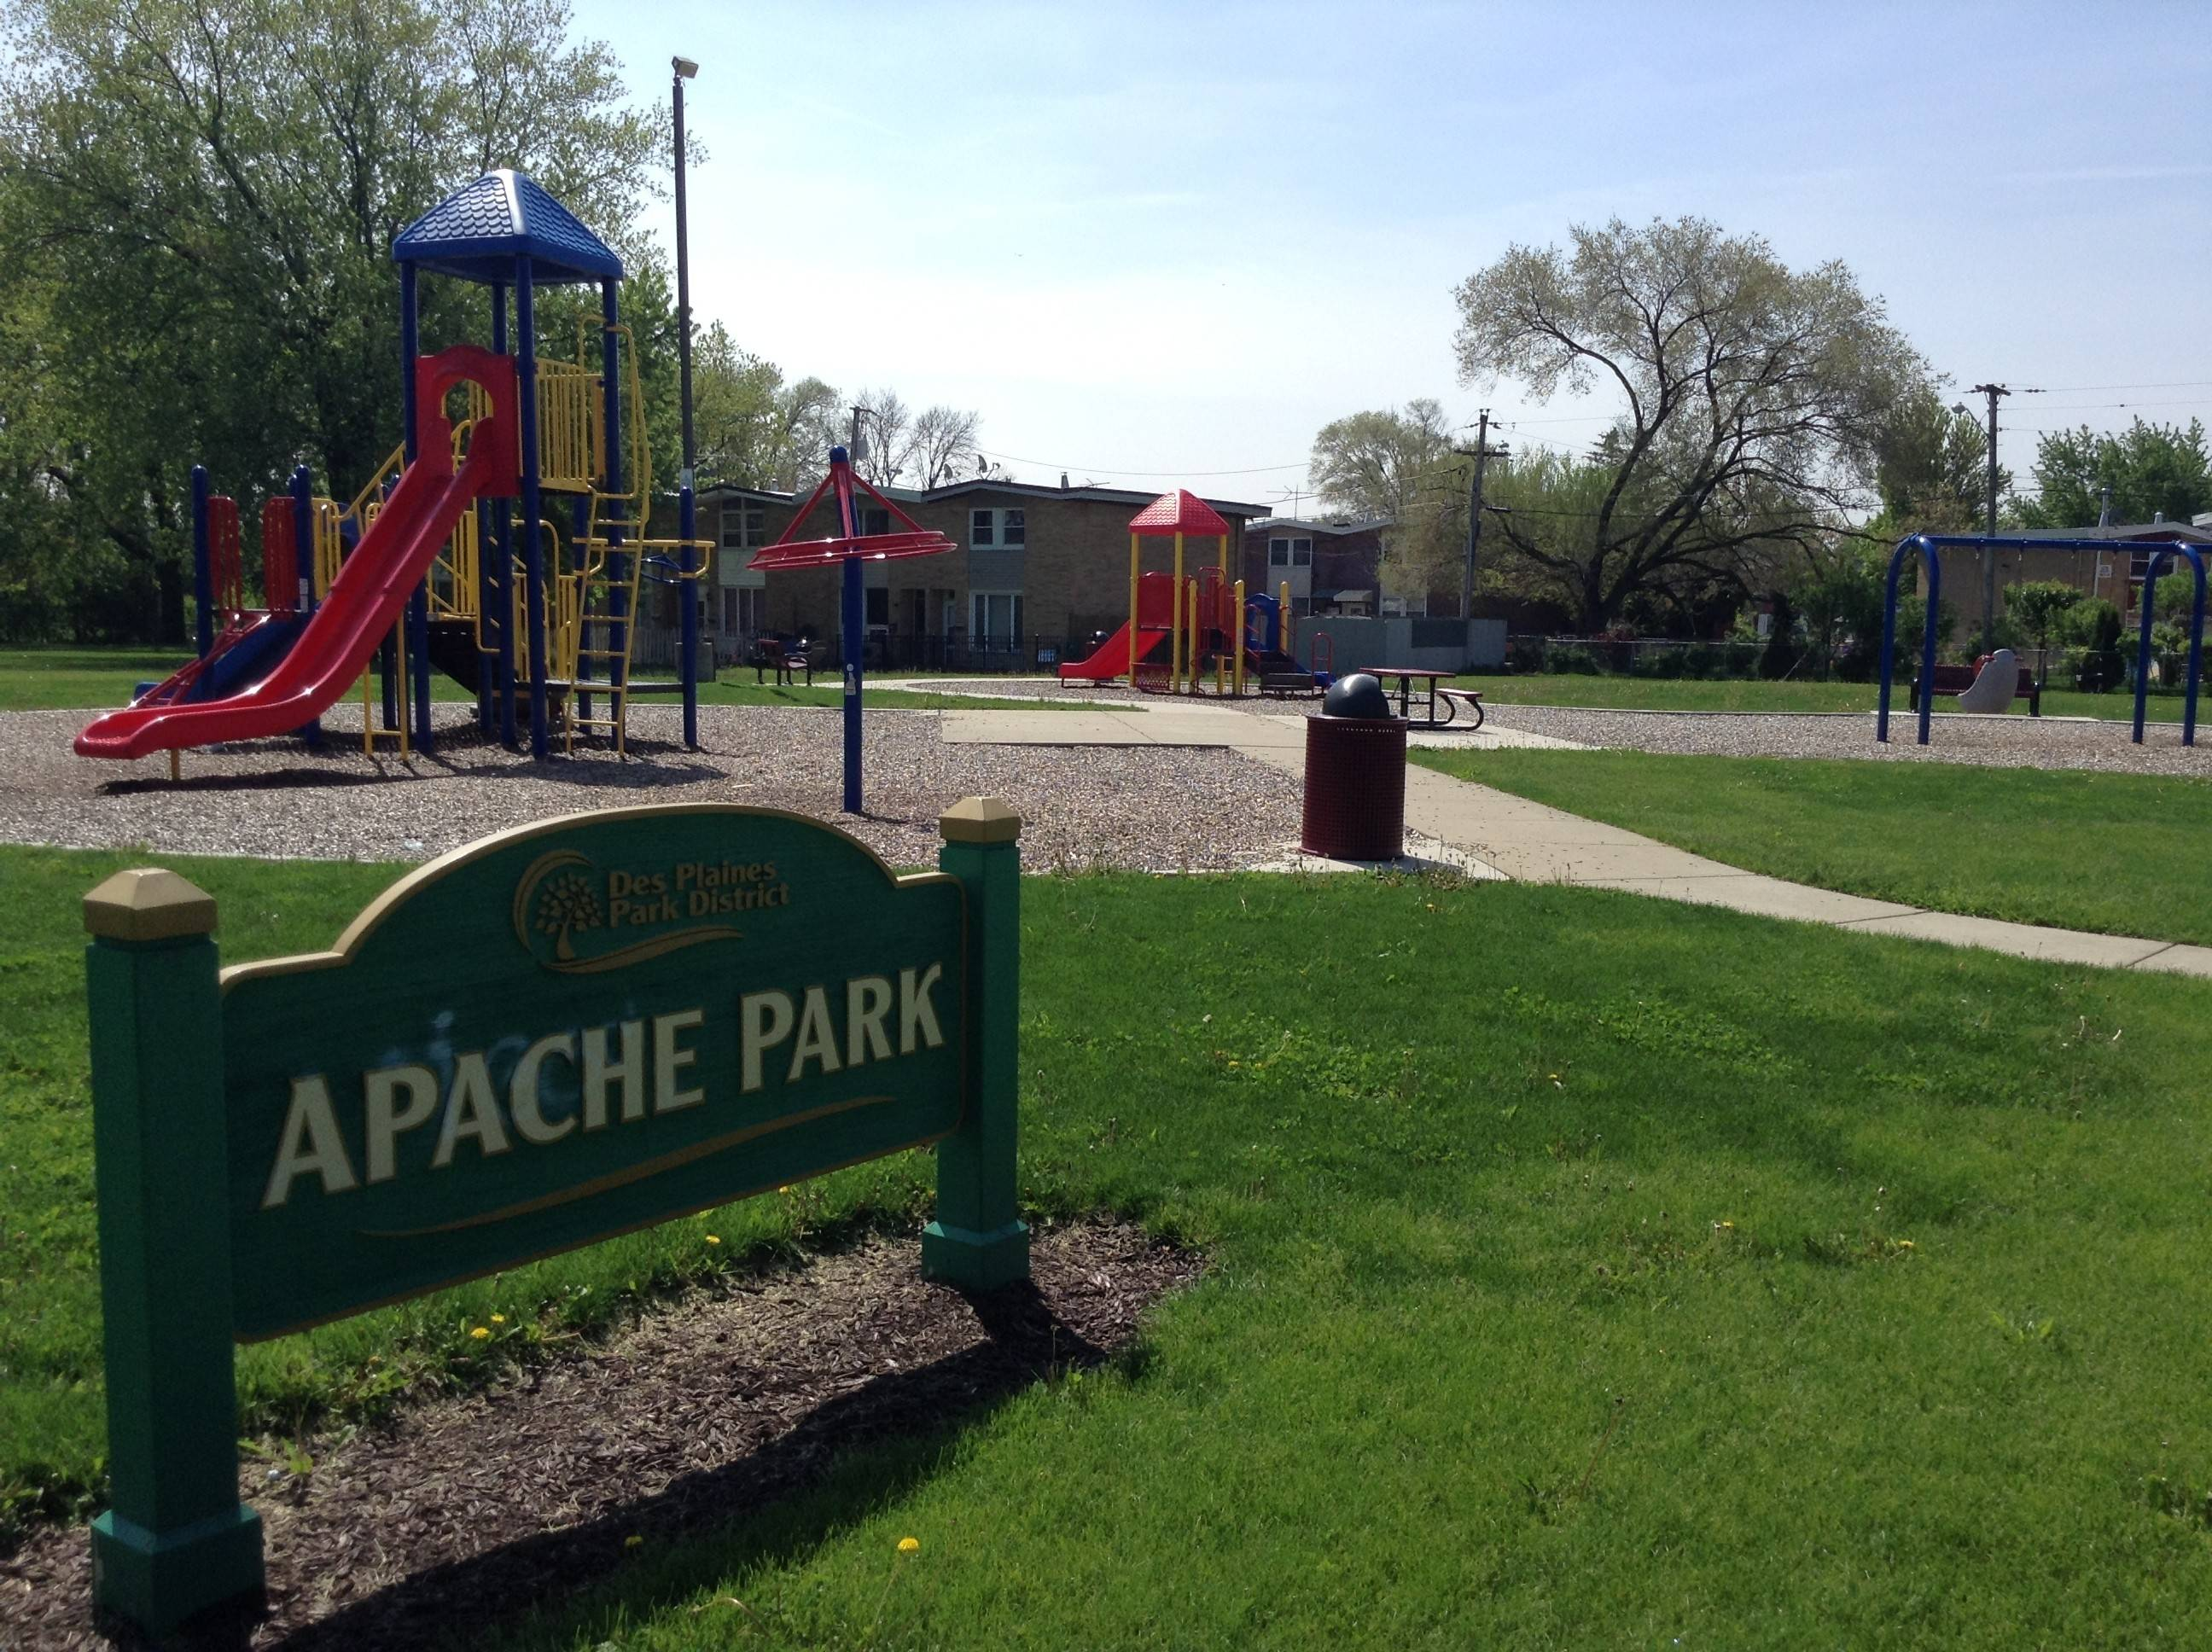 Des Plaines is planning $400,000 in improvements to Apache Park and the surrounding neighborhood. Officials say the improvements are part of an effort to improve the safety and well-being of the neighborhood.